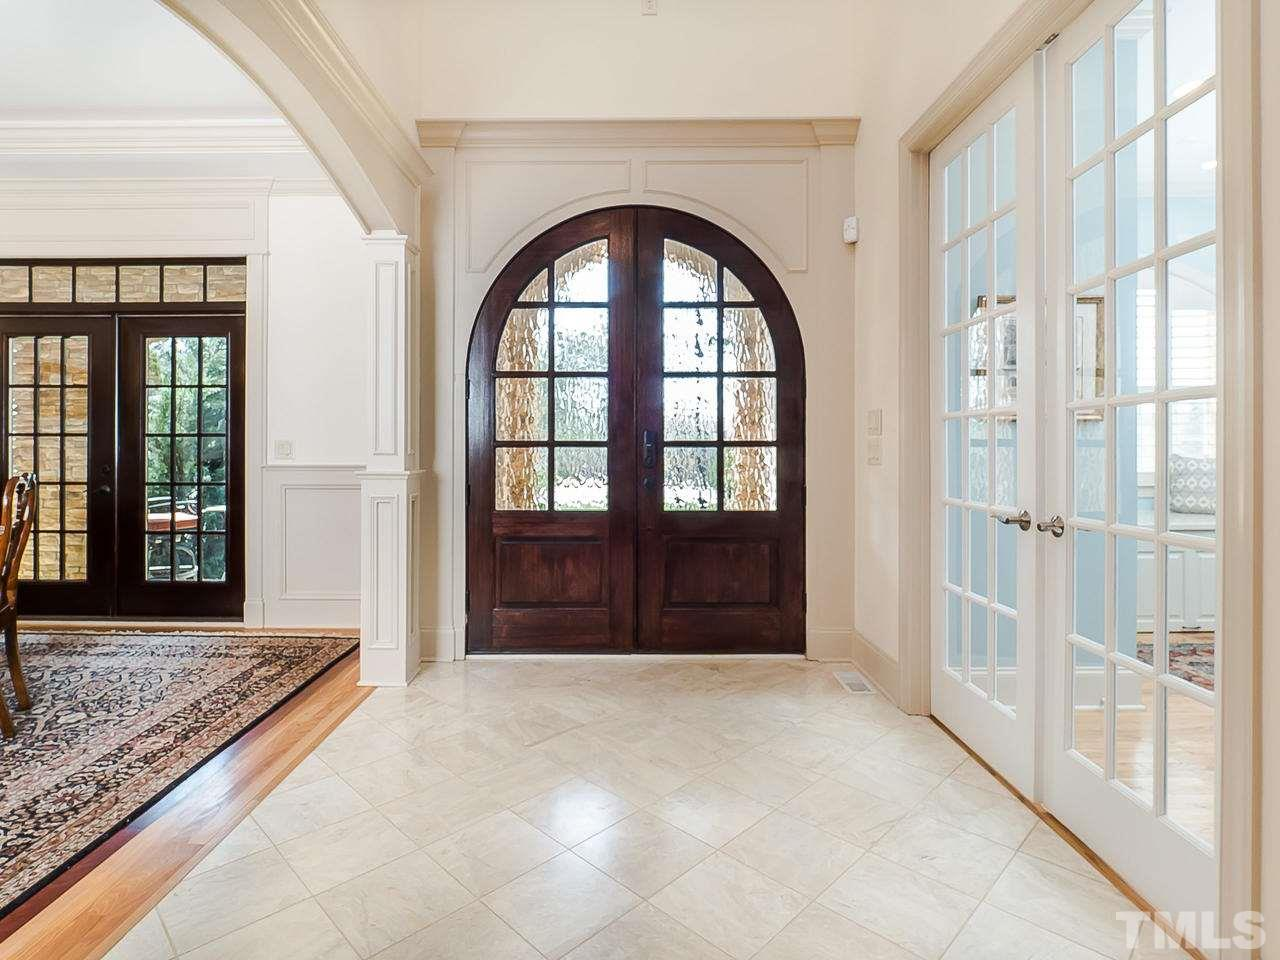 Beautiful Marble tile, 2-story Entry Hall